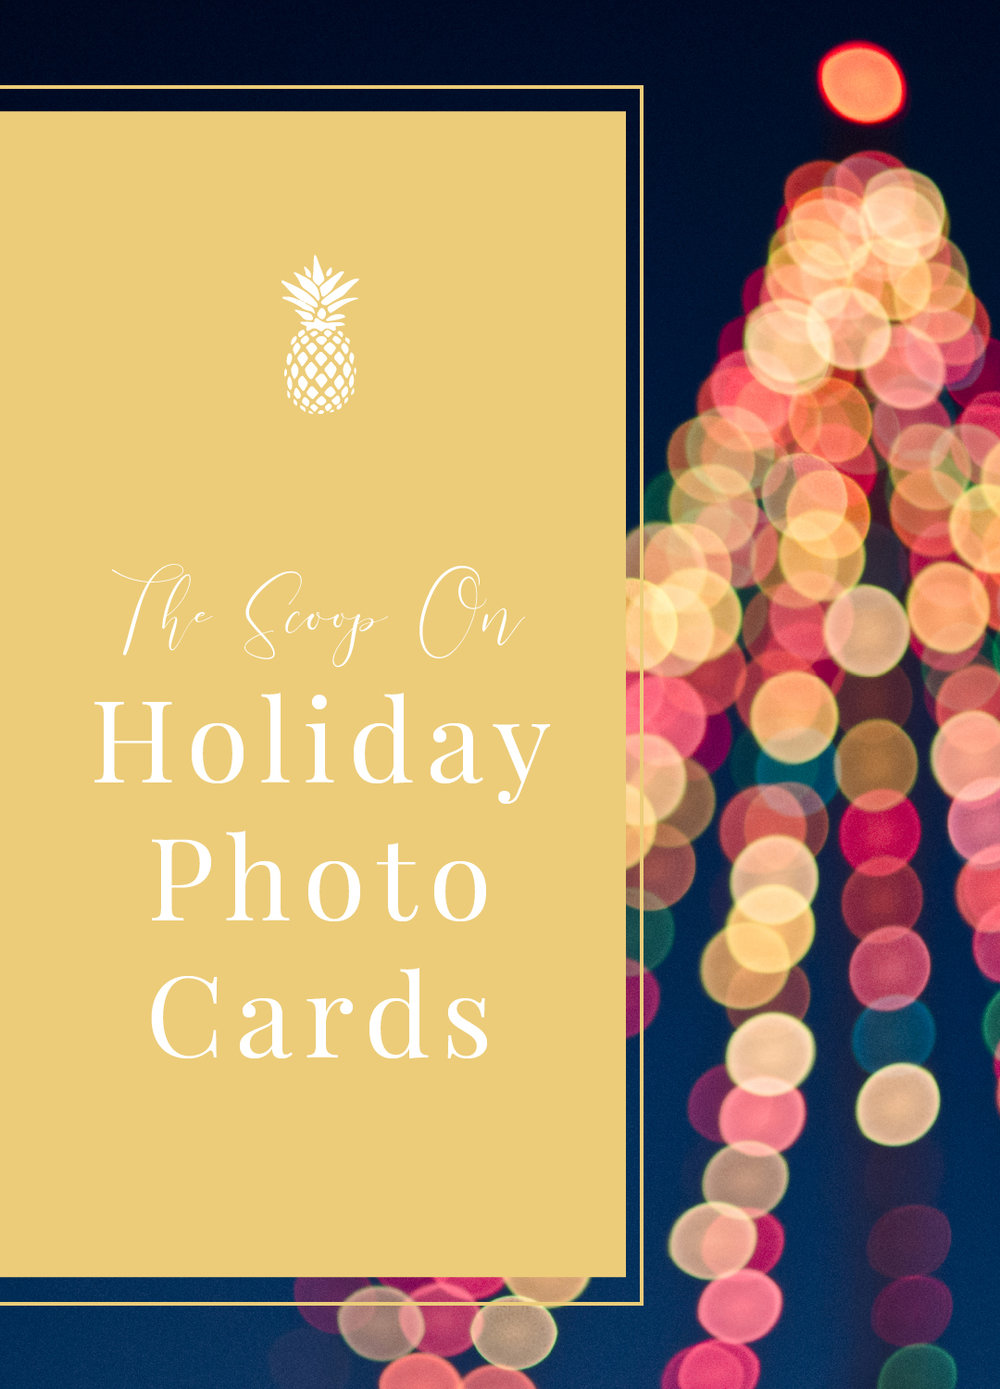 blog-holidaycards.jpg